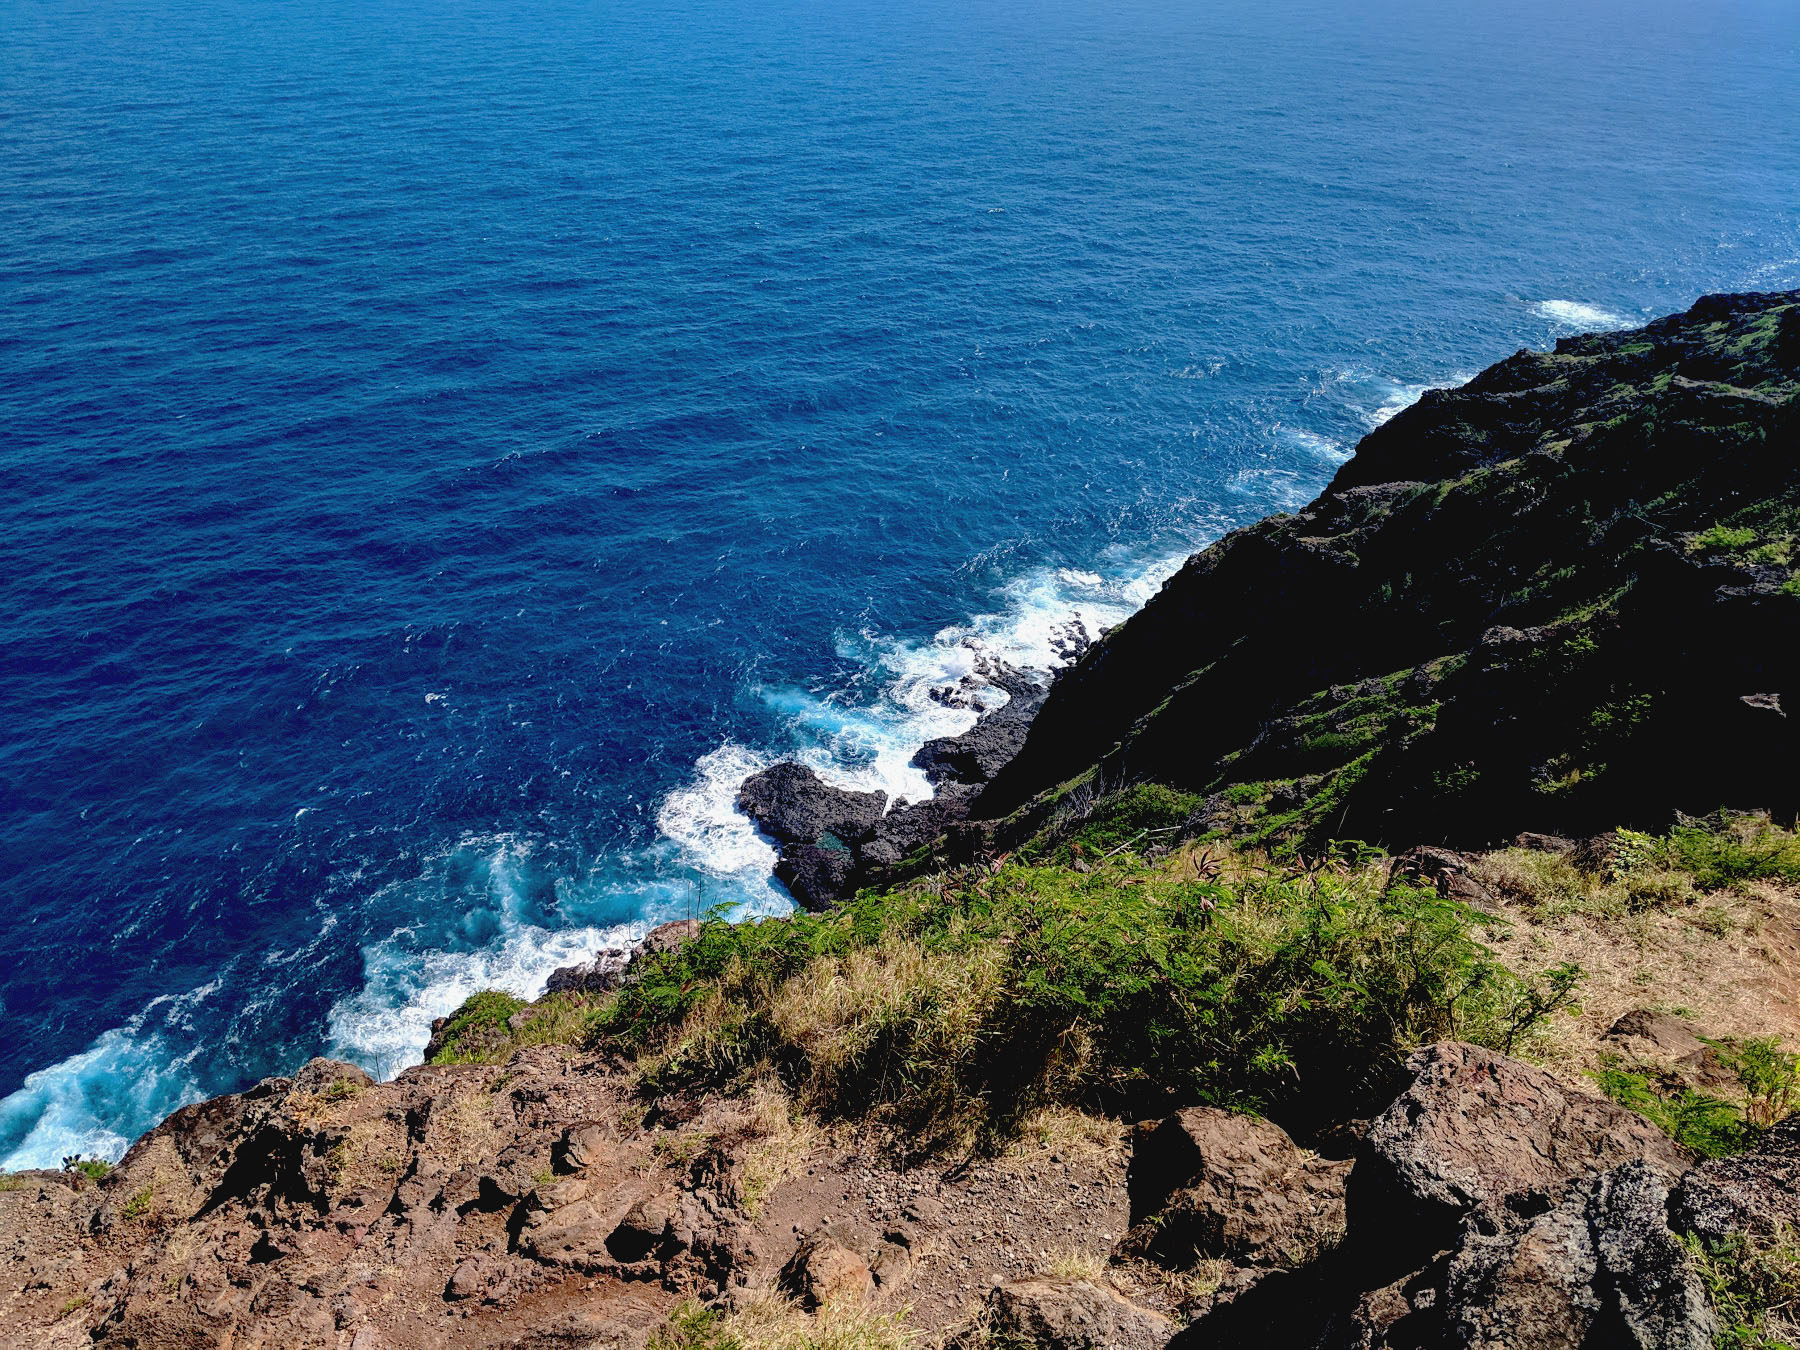 One of my favourite parts of the trip was the Makapu'u Point Lighthouse Trail, but going on to the unmarked trail to the tide pools